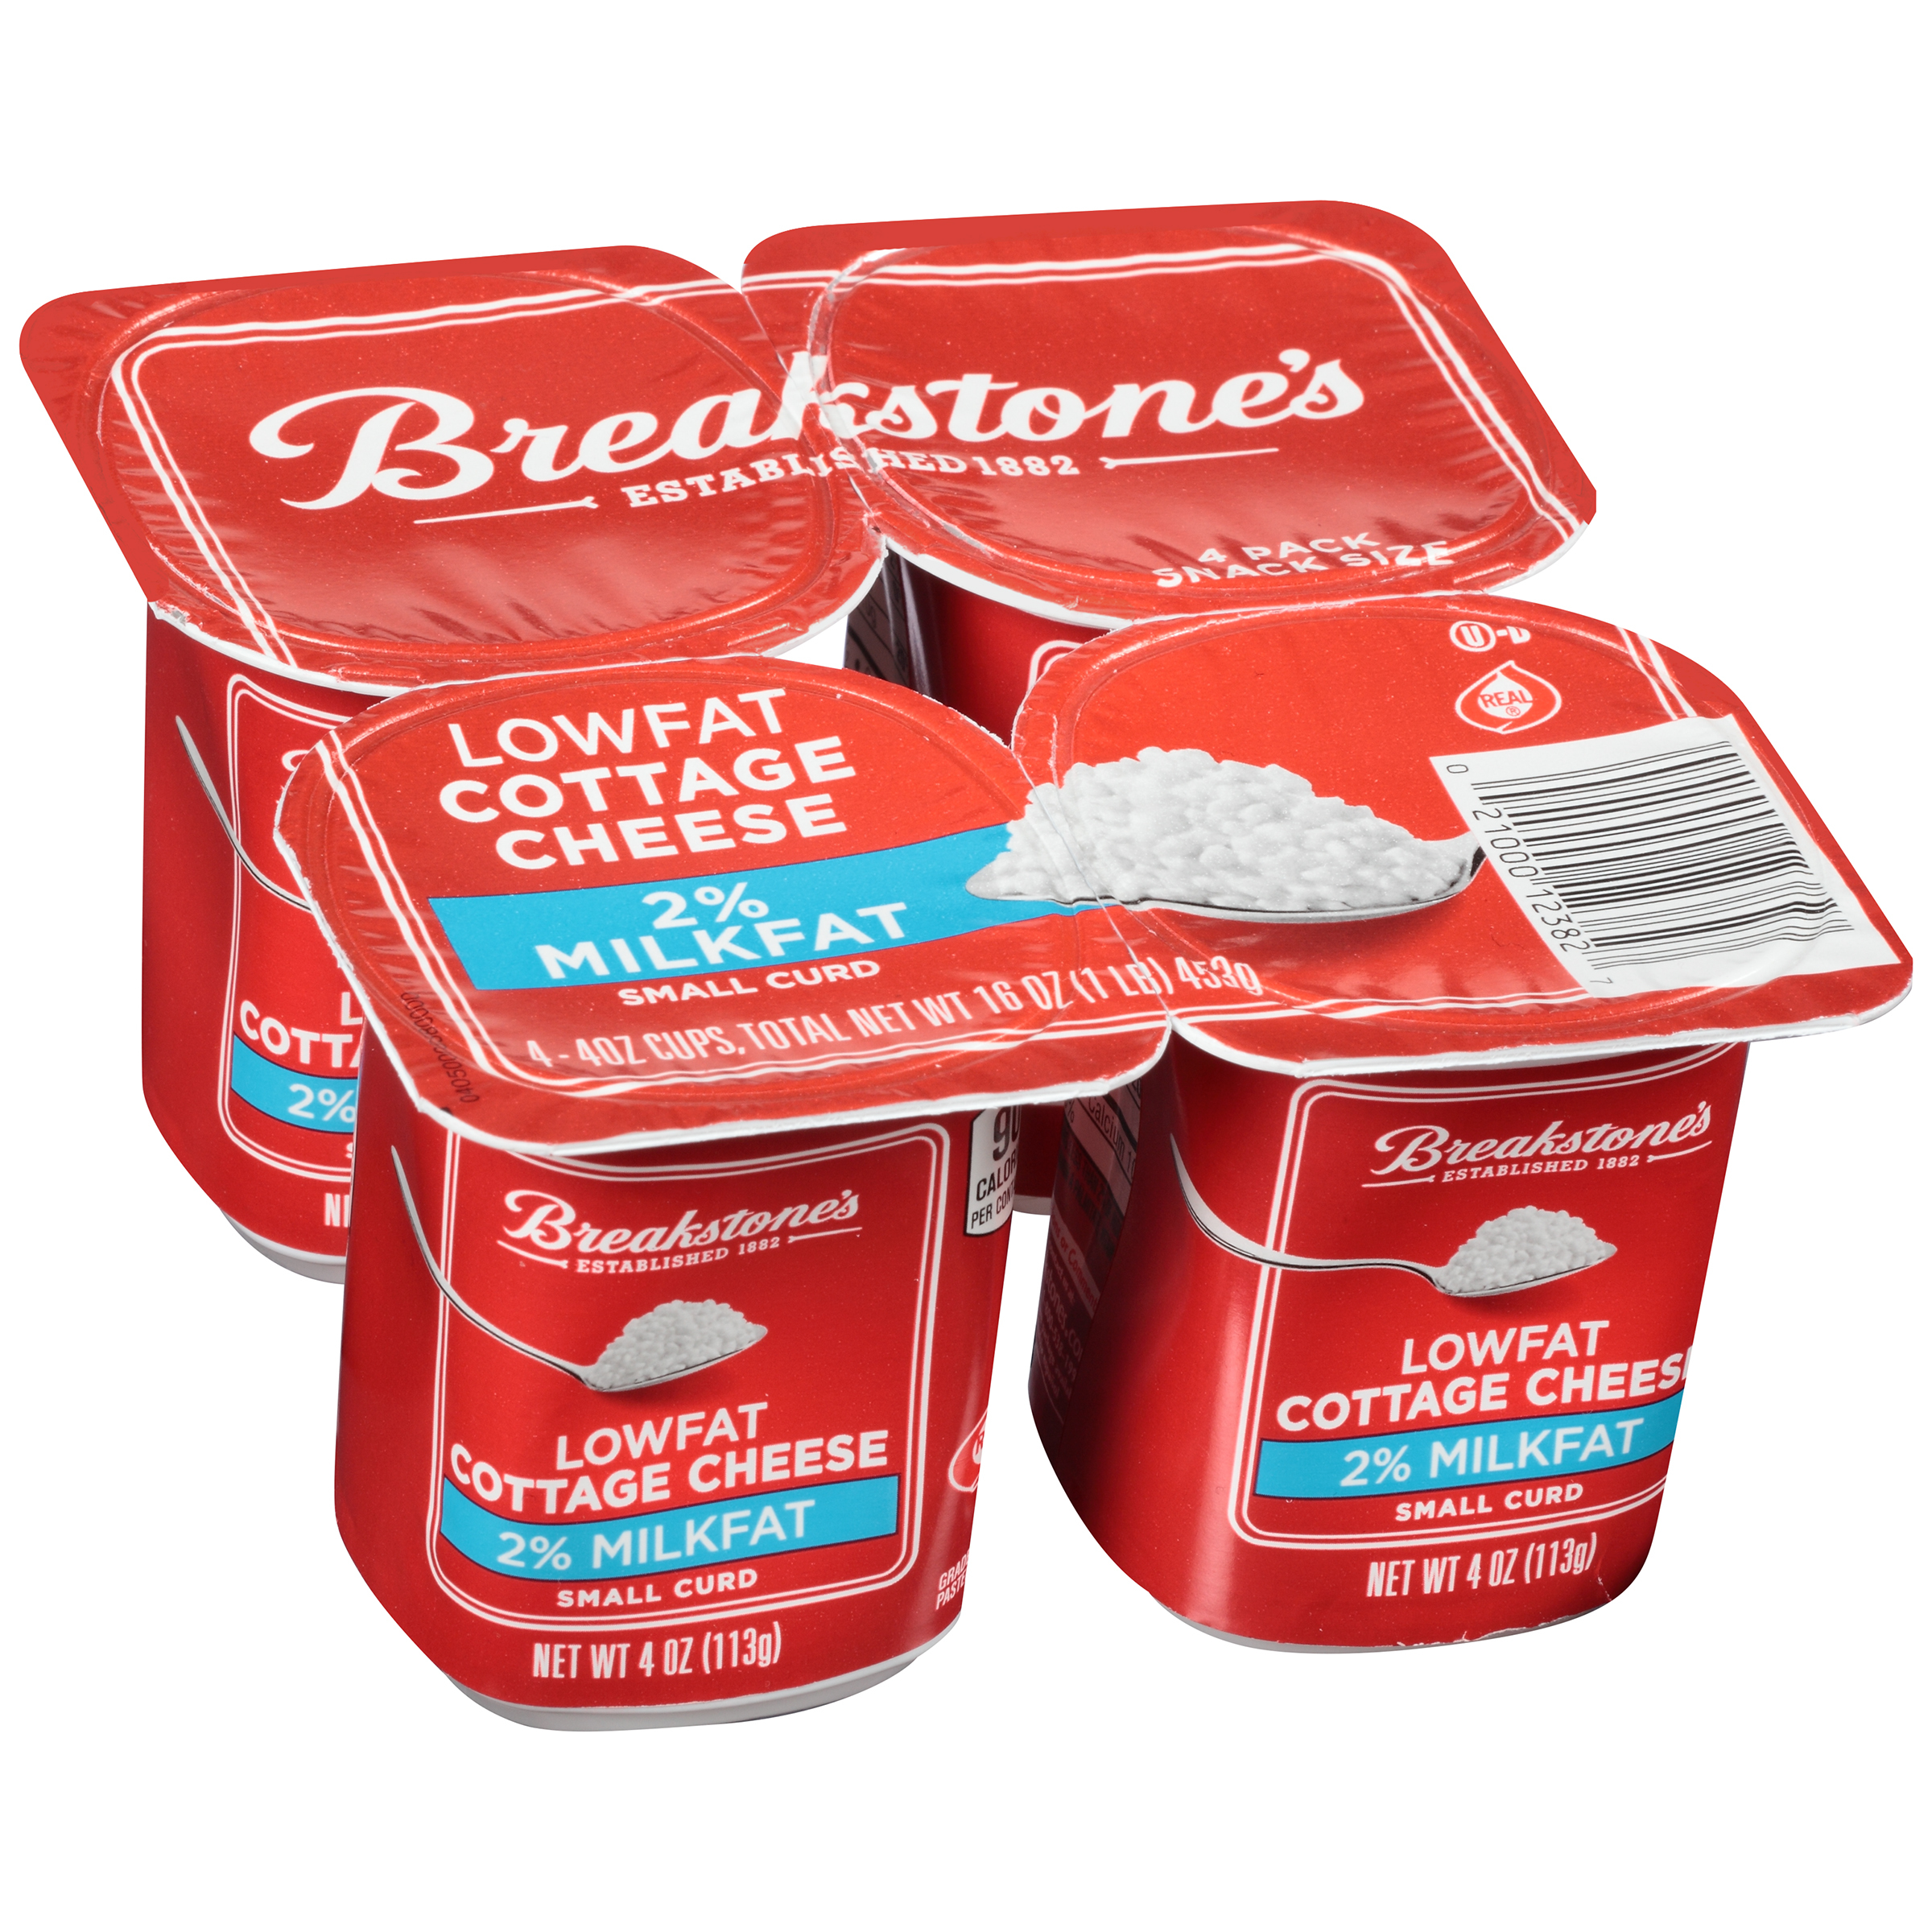 Marvelous Breakstones Small Curd 2 Milkfat Lowfat Cottage Cheese 4 Download Free Architecture Designs Embacsunscenecom